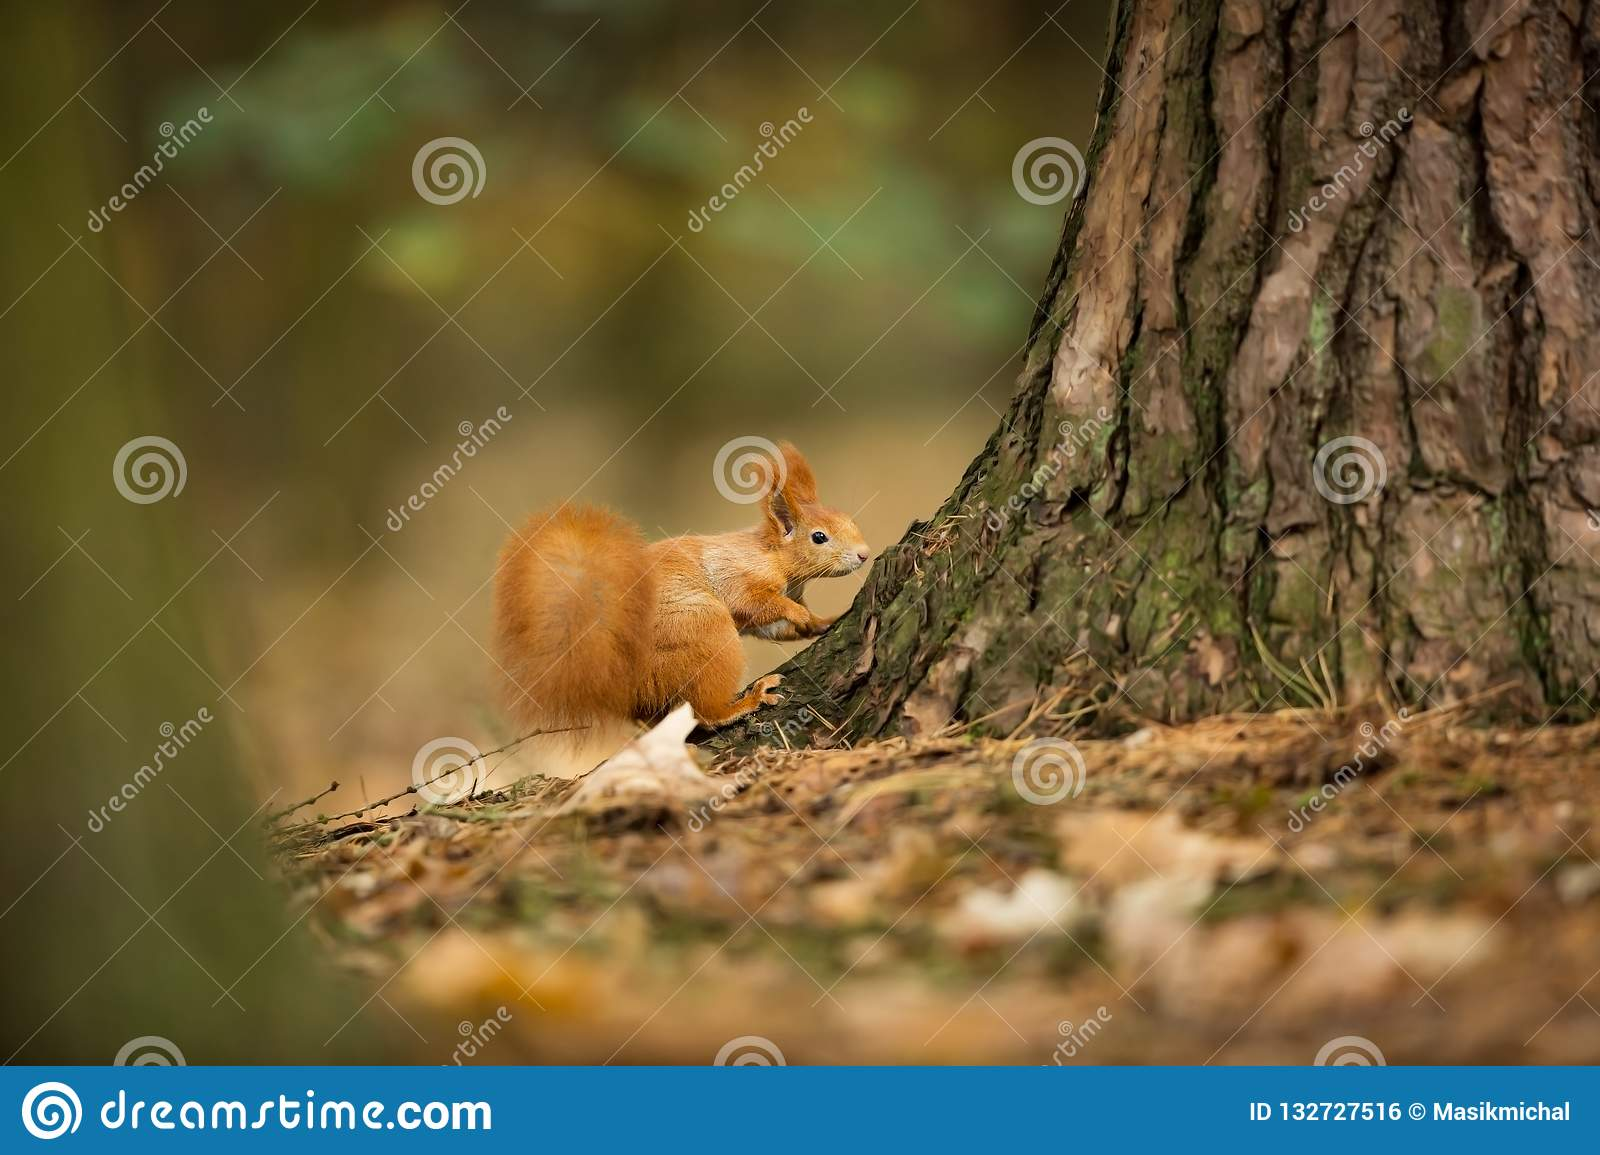 b088d0da1 The squirrel was photographed in the Czech Republic. Squirrel is a  medium-sized rodent.